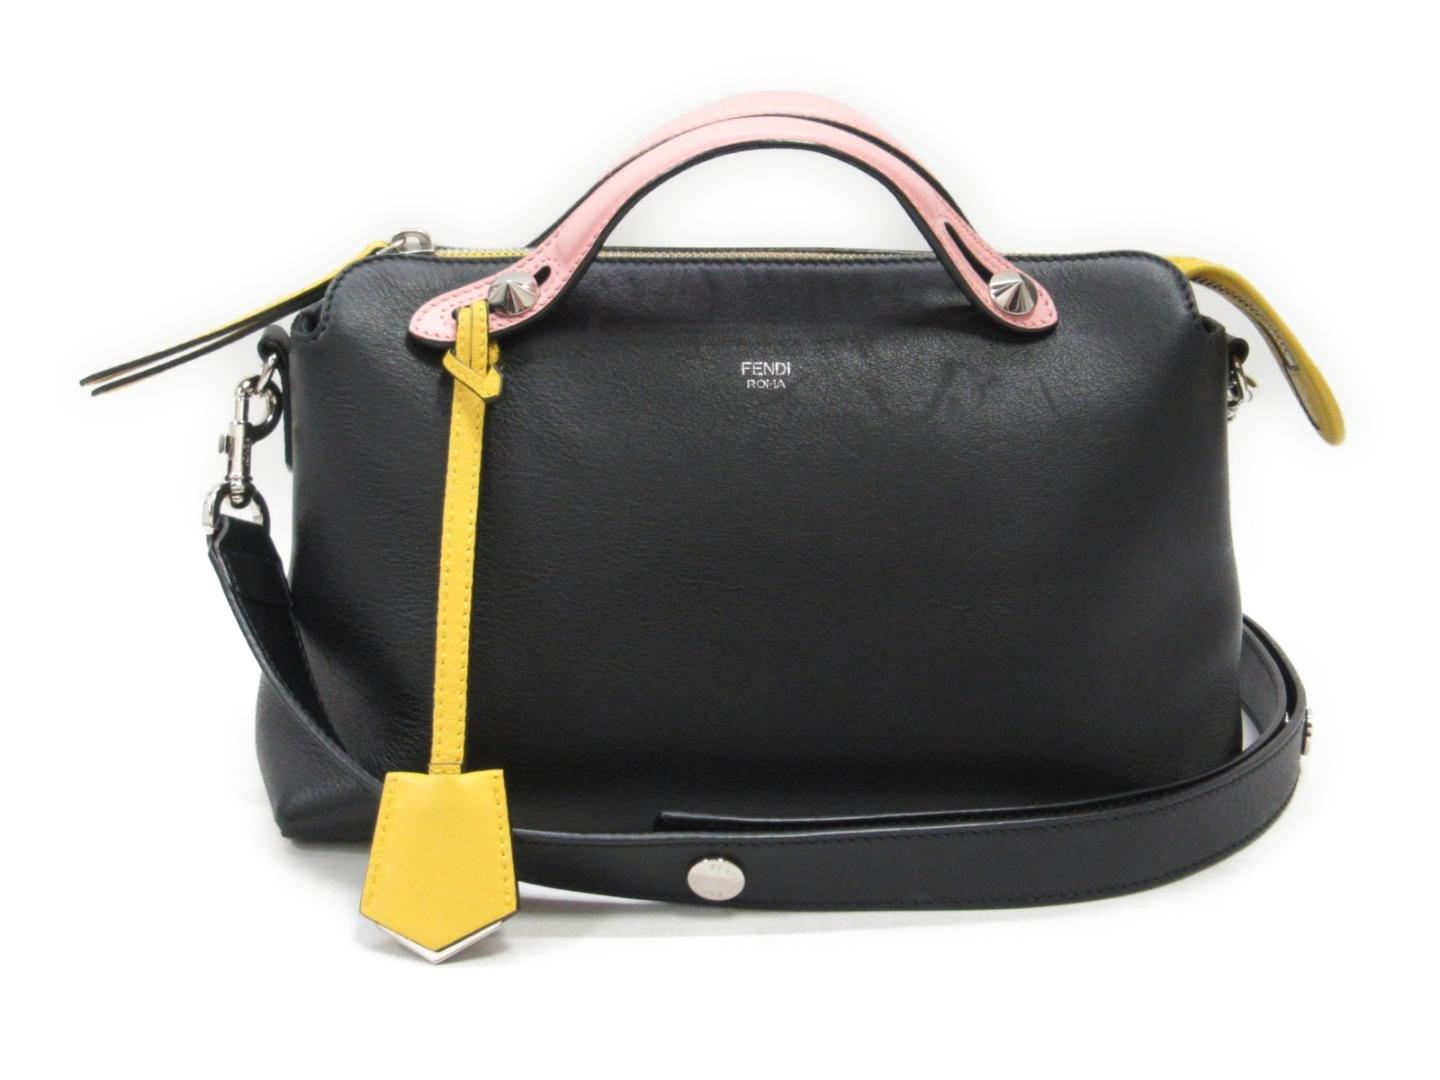 caf6692adbe7 Lyst - Fendi By The Way 2way Hand Shoulder Bag Blackxpinkxyellow ...